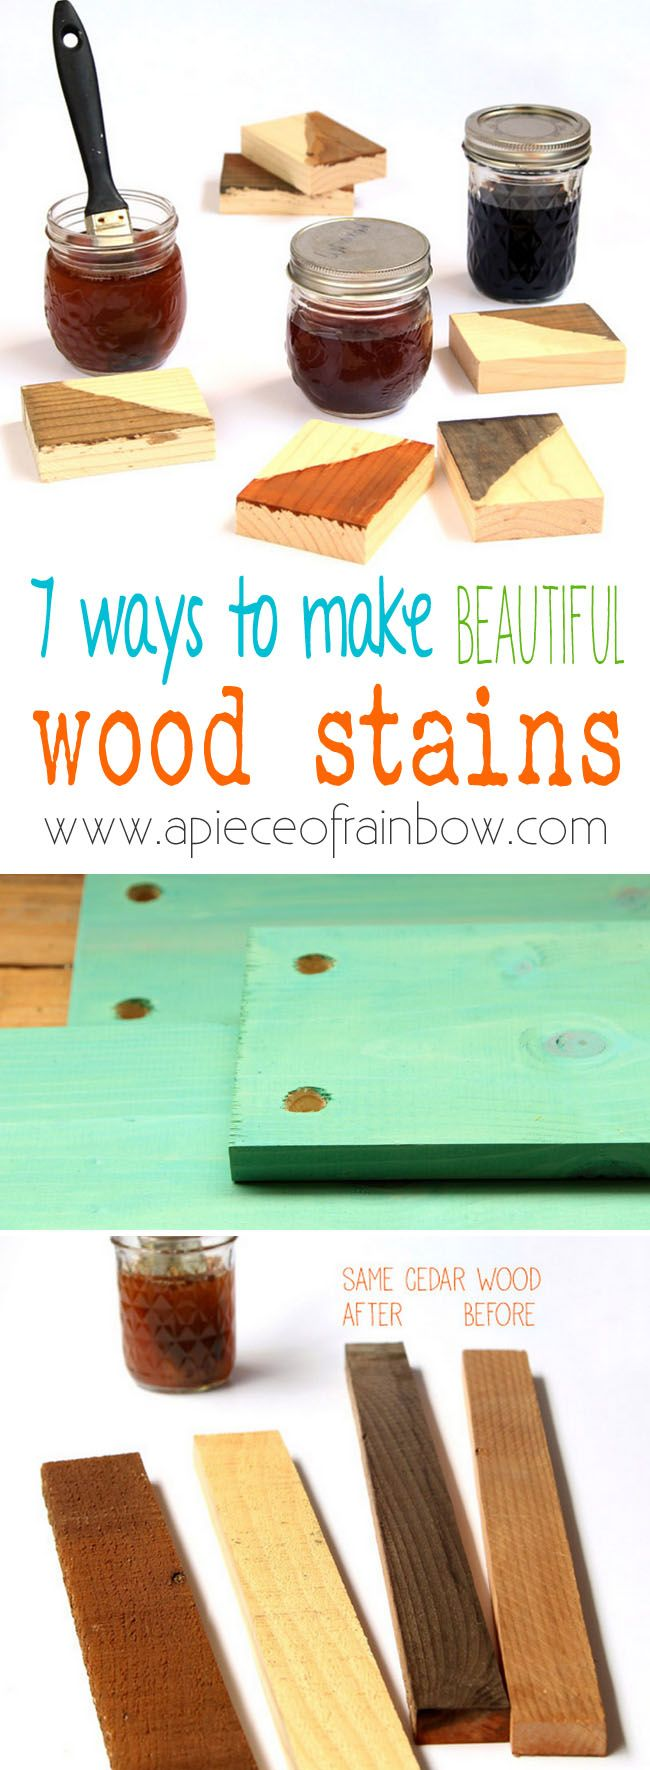 7 ways to make wood stain from natural household materials! These quick and easy wood stains are super effective, long lasting, low cost, and non-toxic! - A Piece Of Rainbow